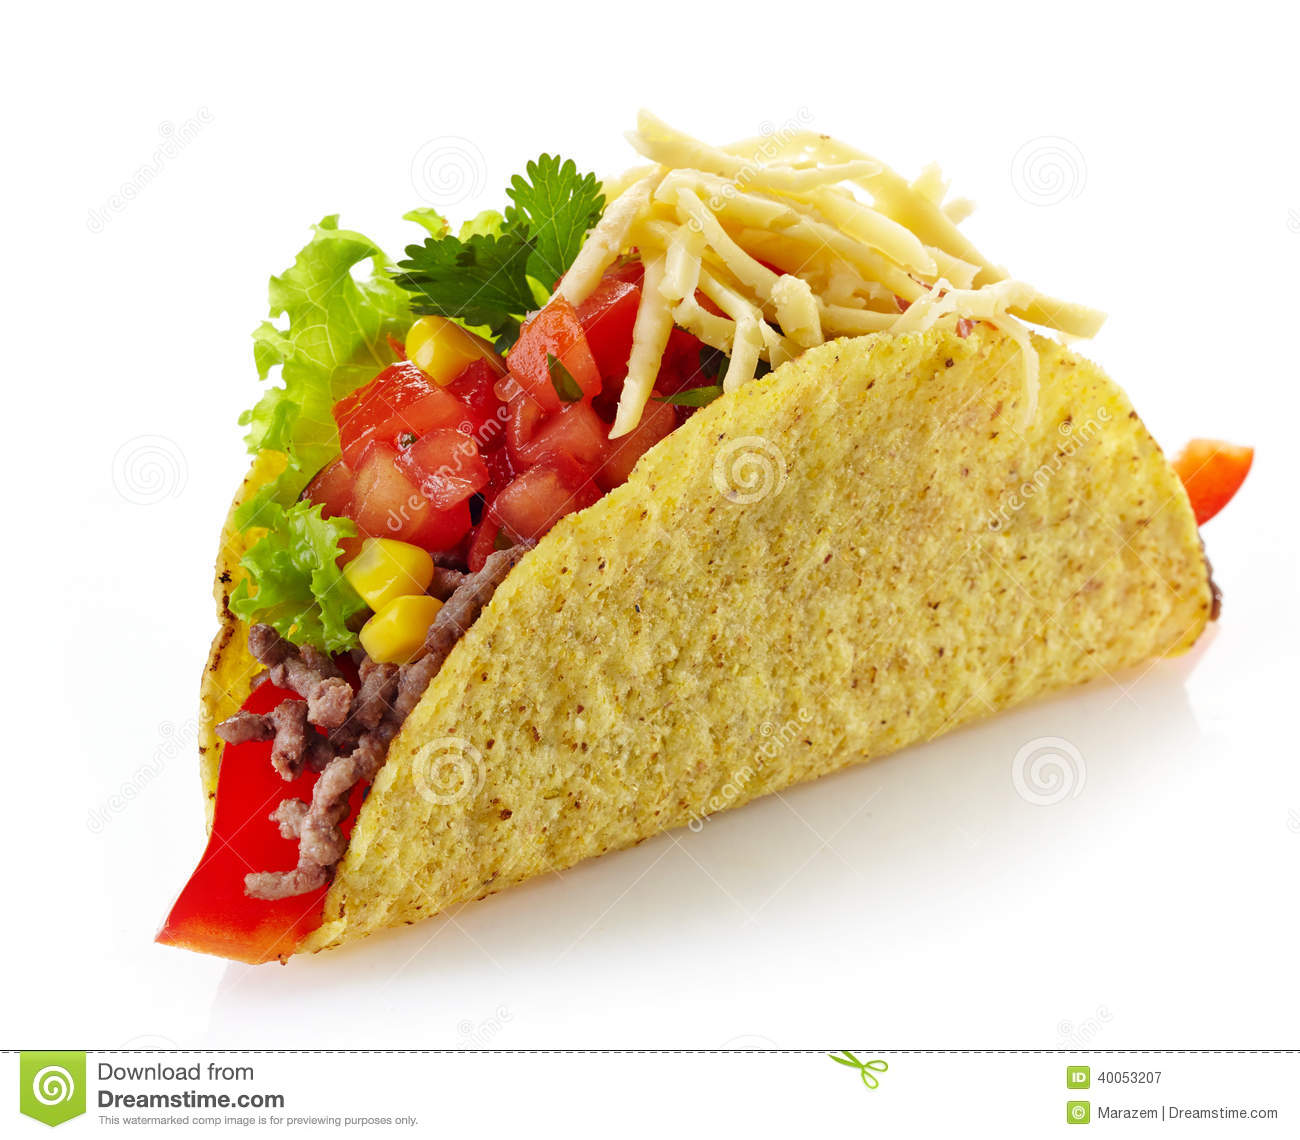 Mexican Food Tacos Stock Photo - Image: 40053207